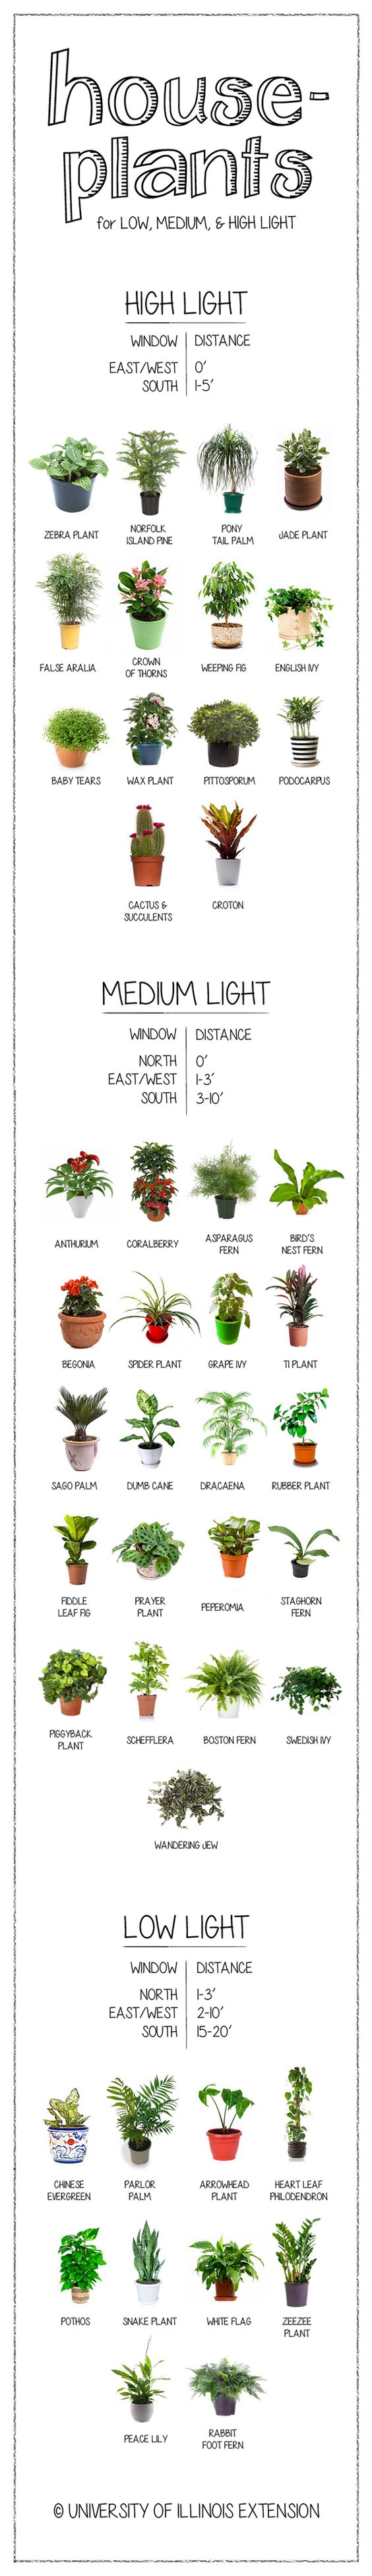 Houseplants for Low, Medium, & Bright Light [Infographic] | ecogreenlove